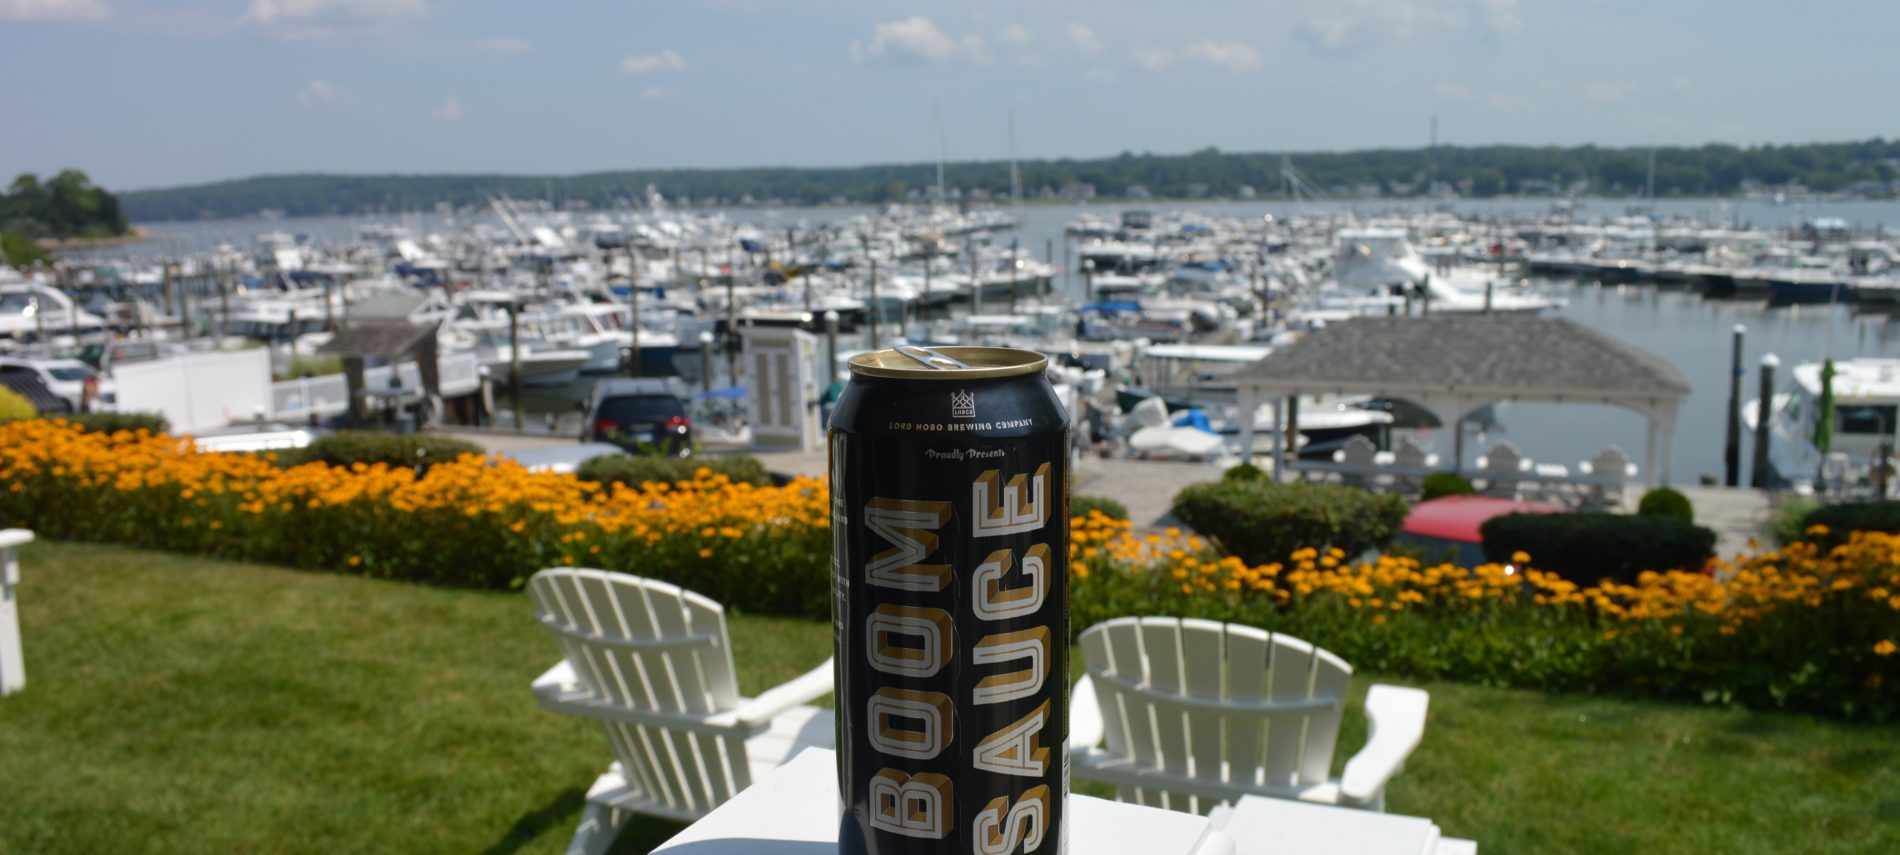 Lord Hobo Boom Sauce at Inn at Harbor Hill Marina